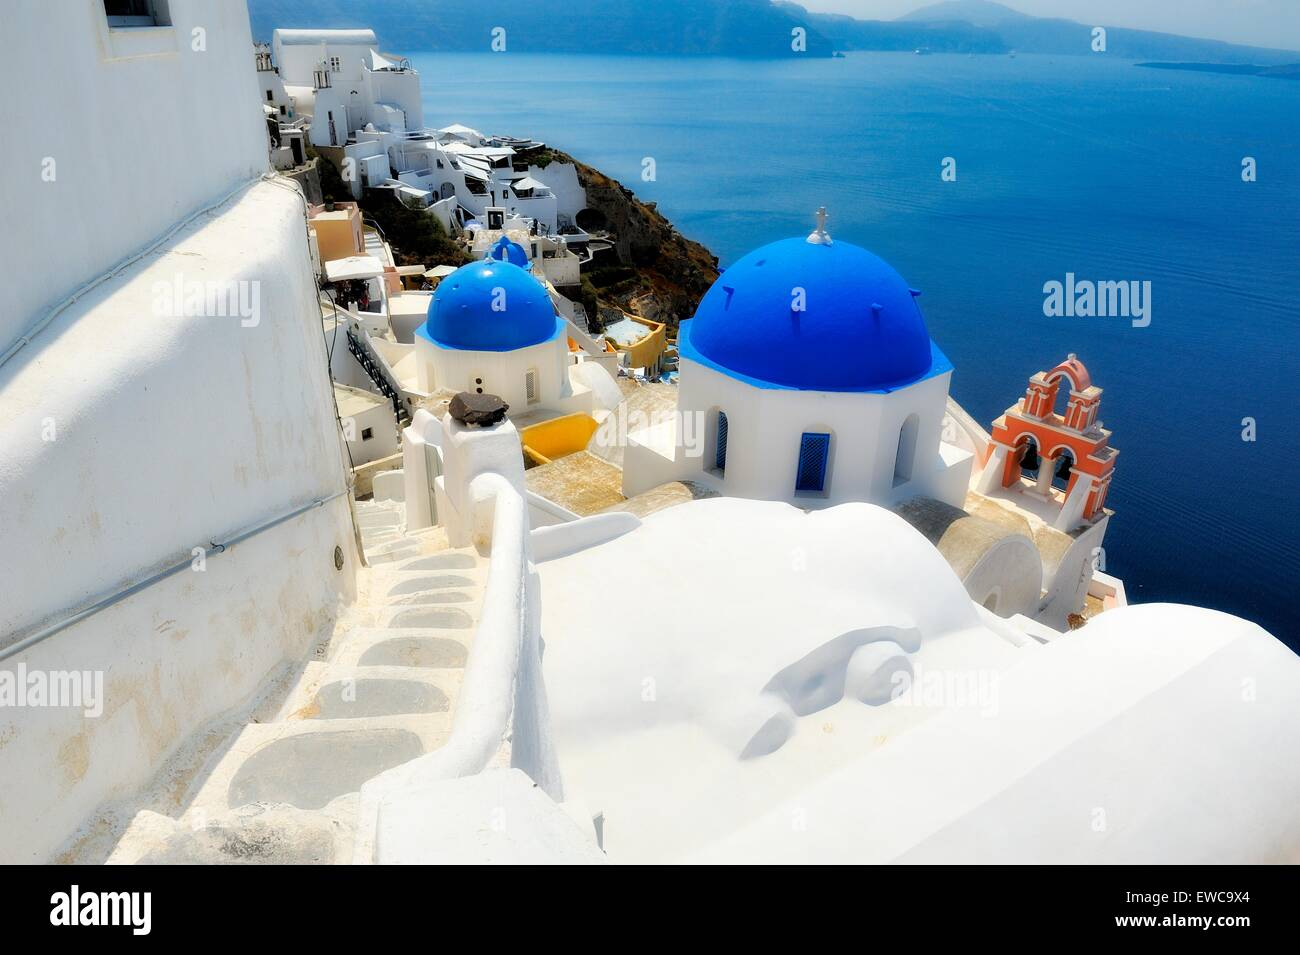 An iconic blue domed Church on the island of Santorini,Greece - Stock Image